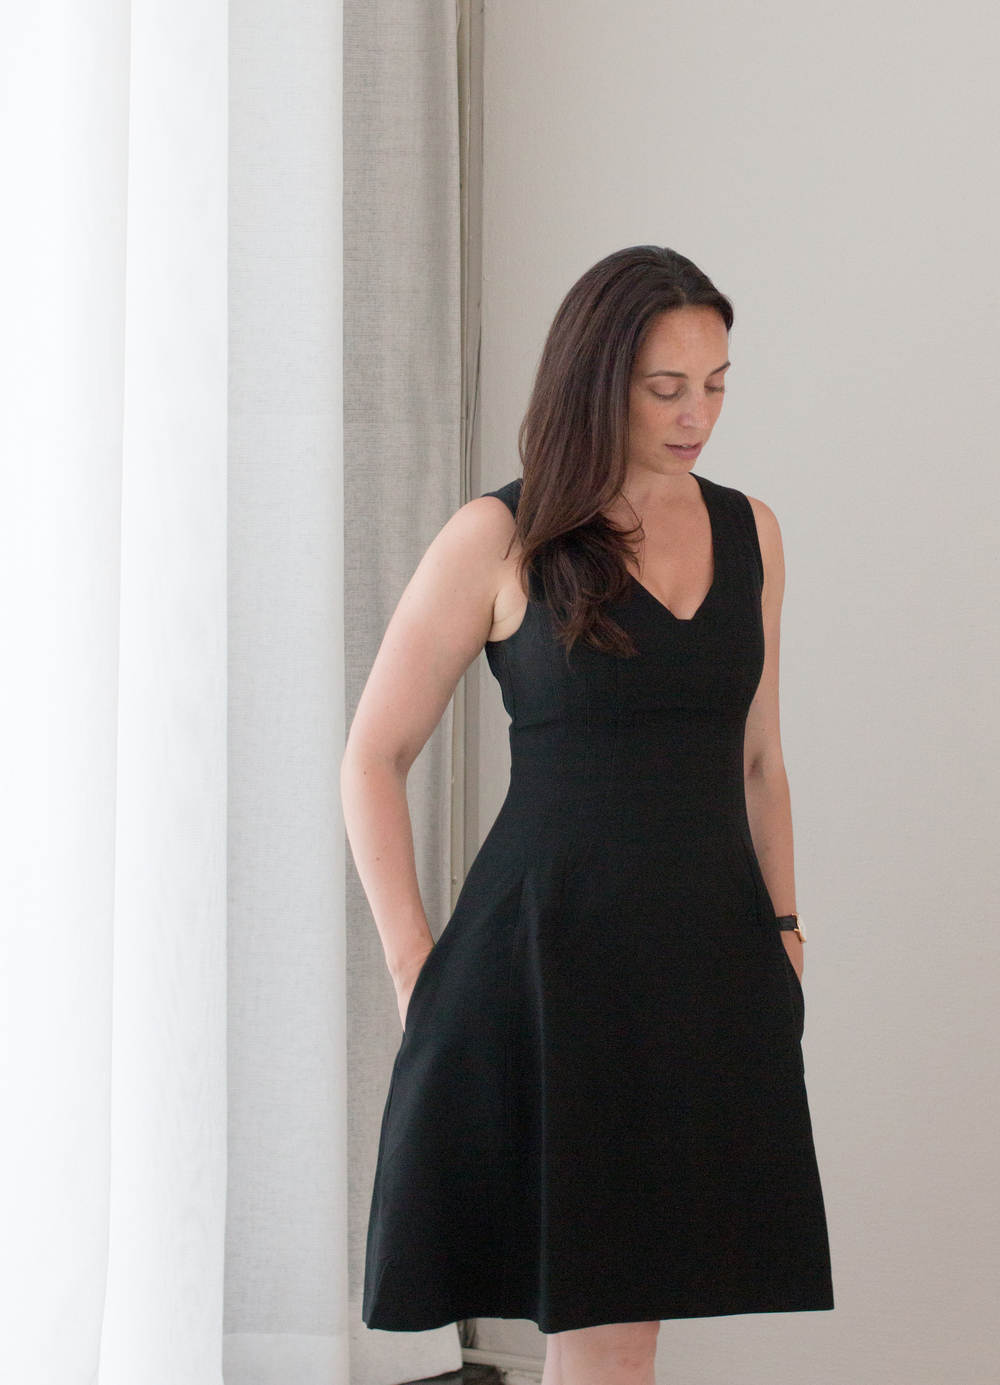 @everydayparisian @rebeccaplotnick little black dress